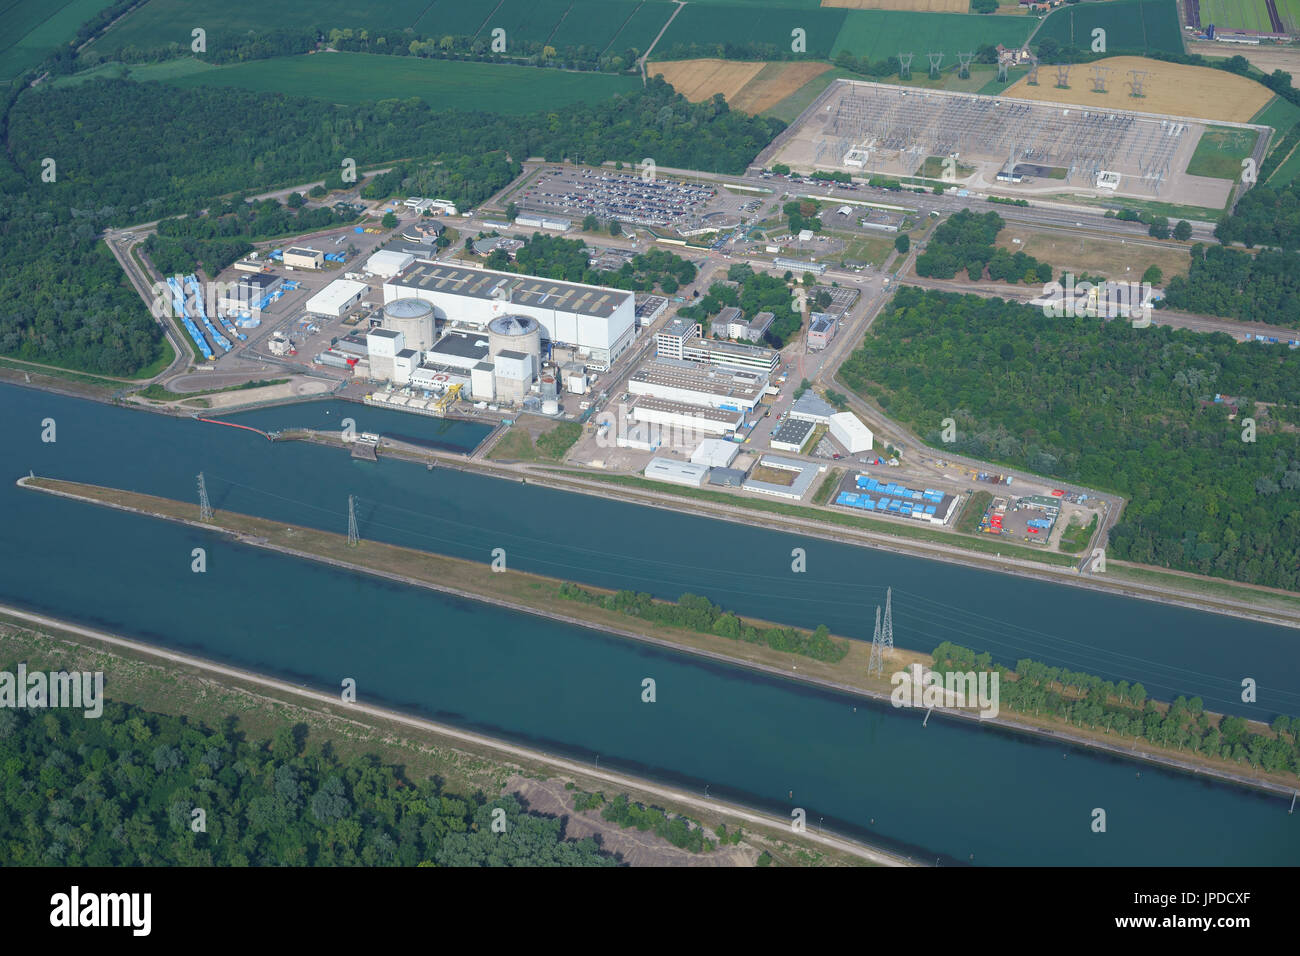 FESSENHEIM NUCLEAR POWER PLANT ALONGSIDE THE GRAND CANAL D'ALSACE (aerial view). Haut-Rhin, Alsace, Grand Est, France. - Stock Image